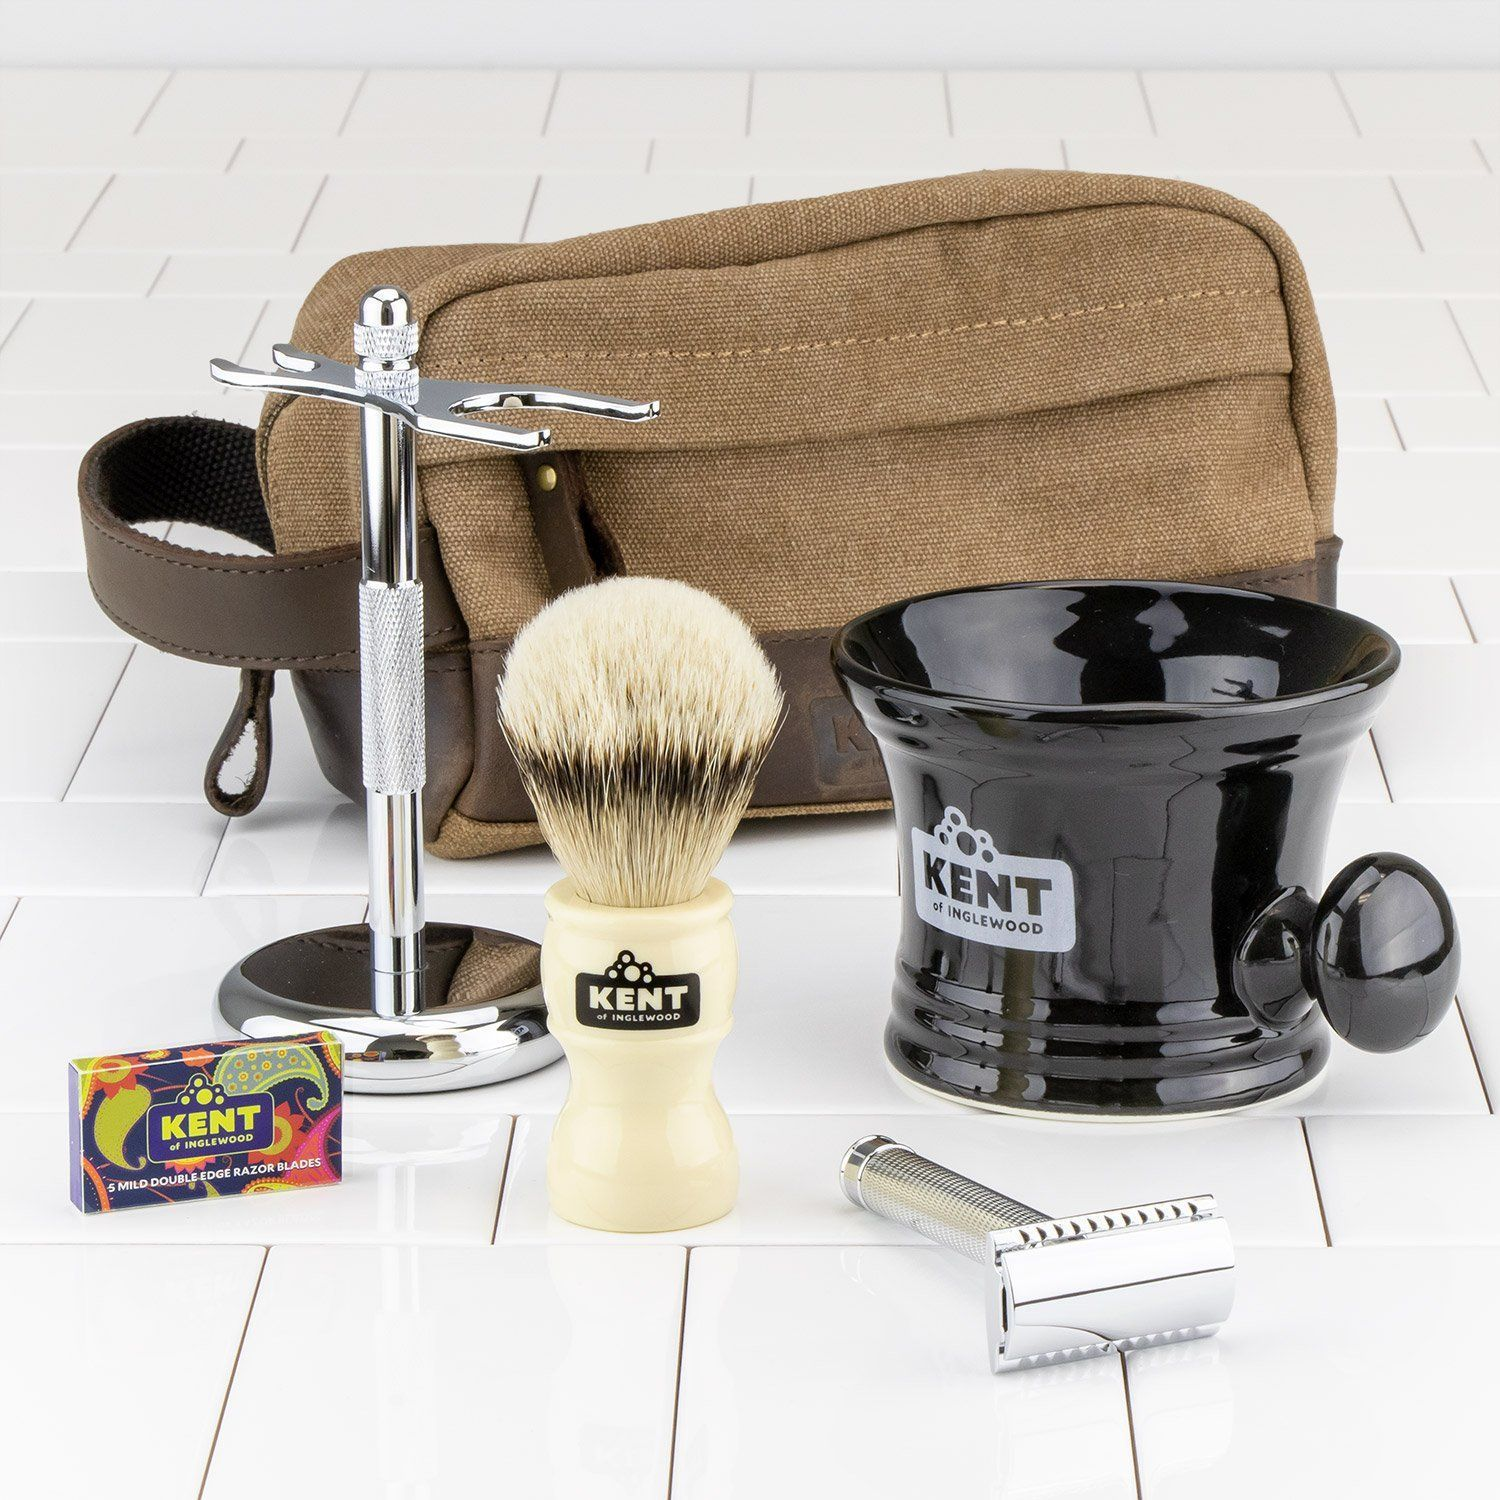 Kent of Inglewood Deluxe Shaving Kit